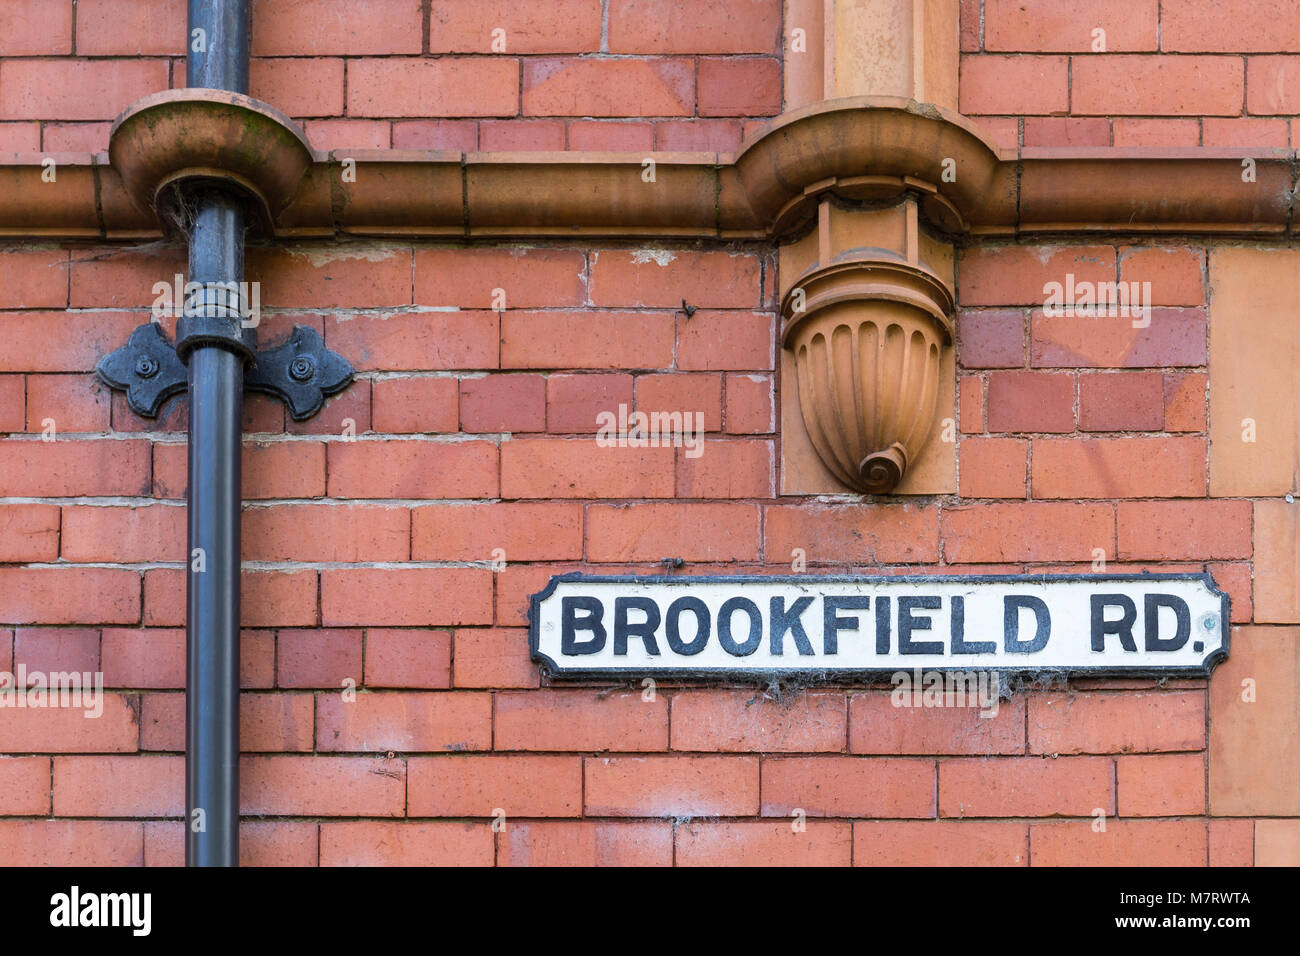 Brookfield Road sign, Lymm, Cheshire, UK - Stock Image